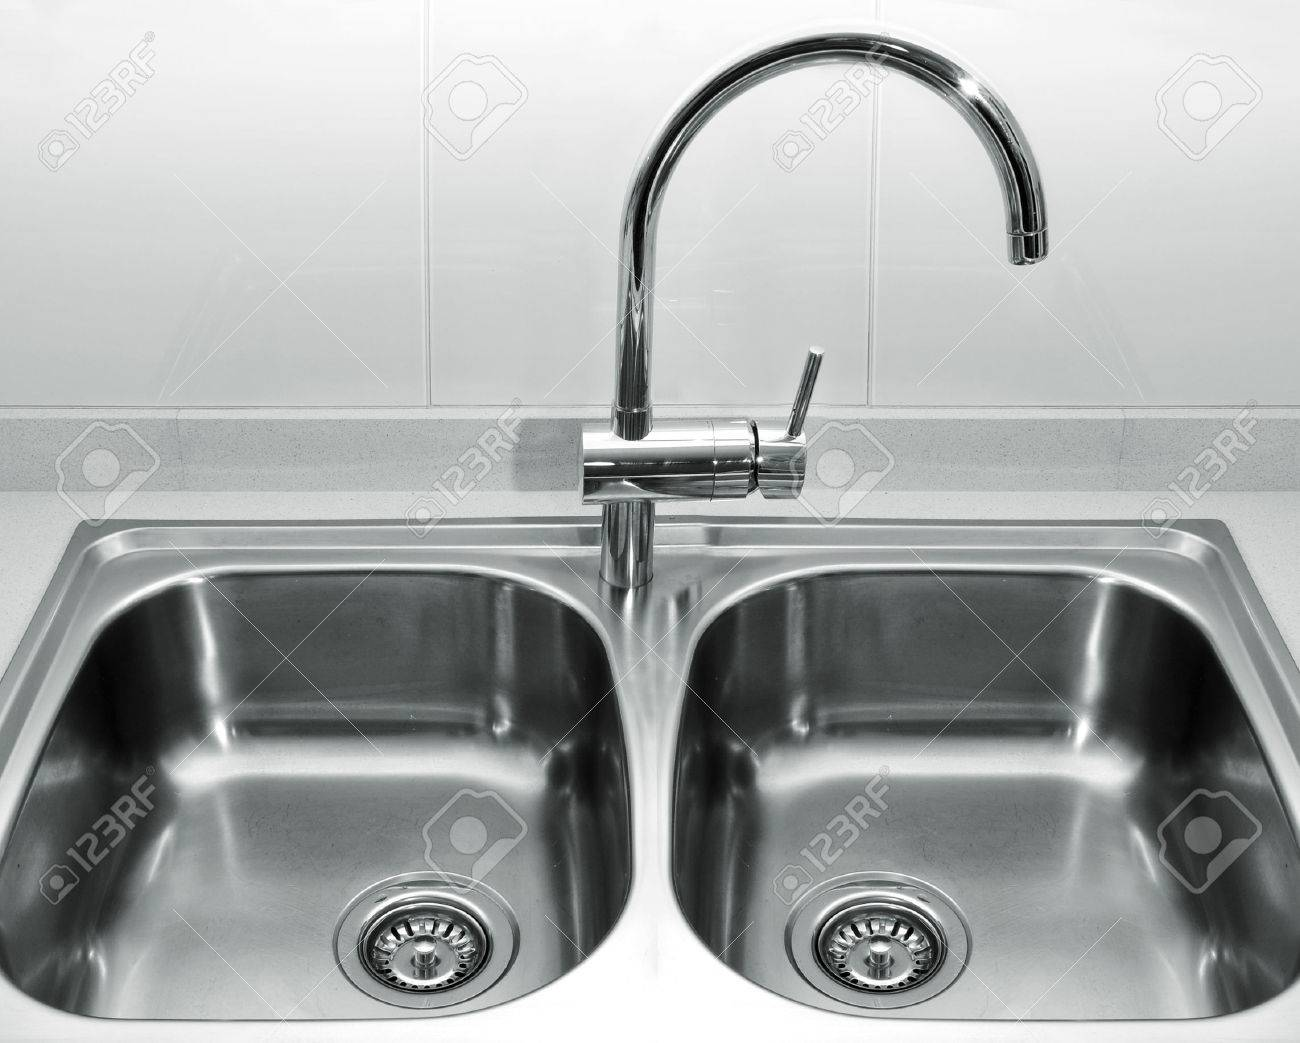 A Double Bowl Stainless Steel Kitchen Sink On A White Granite